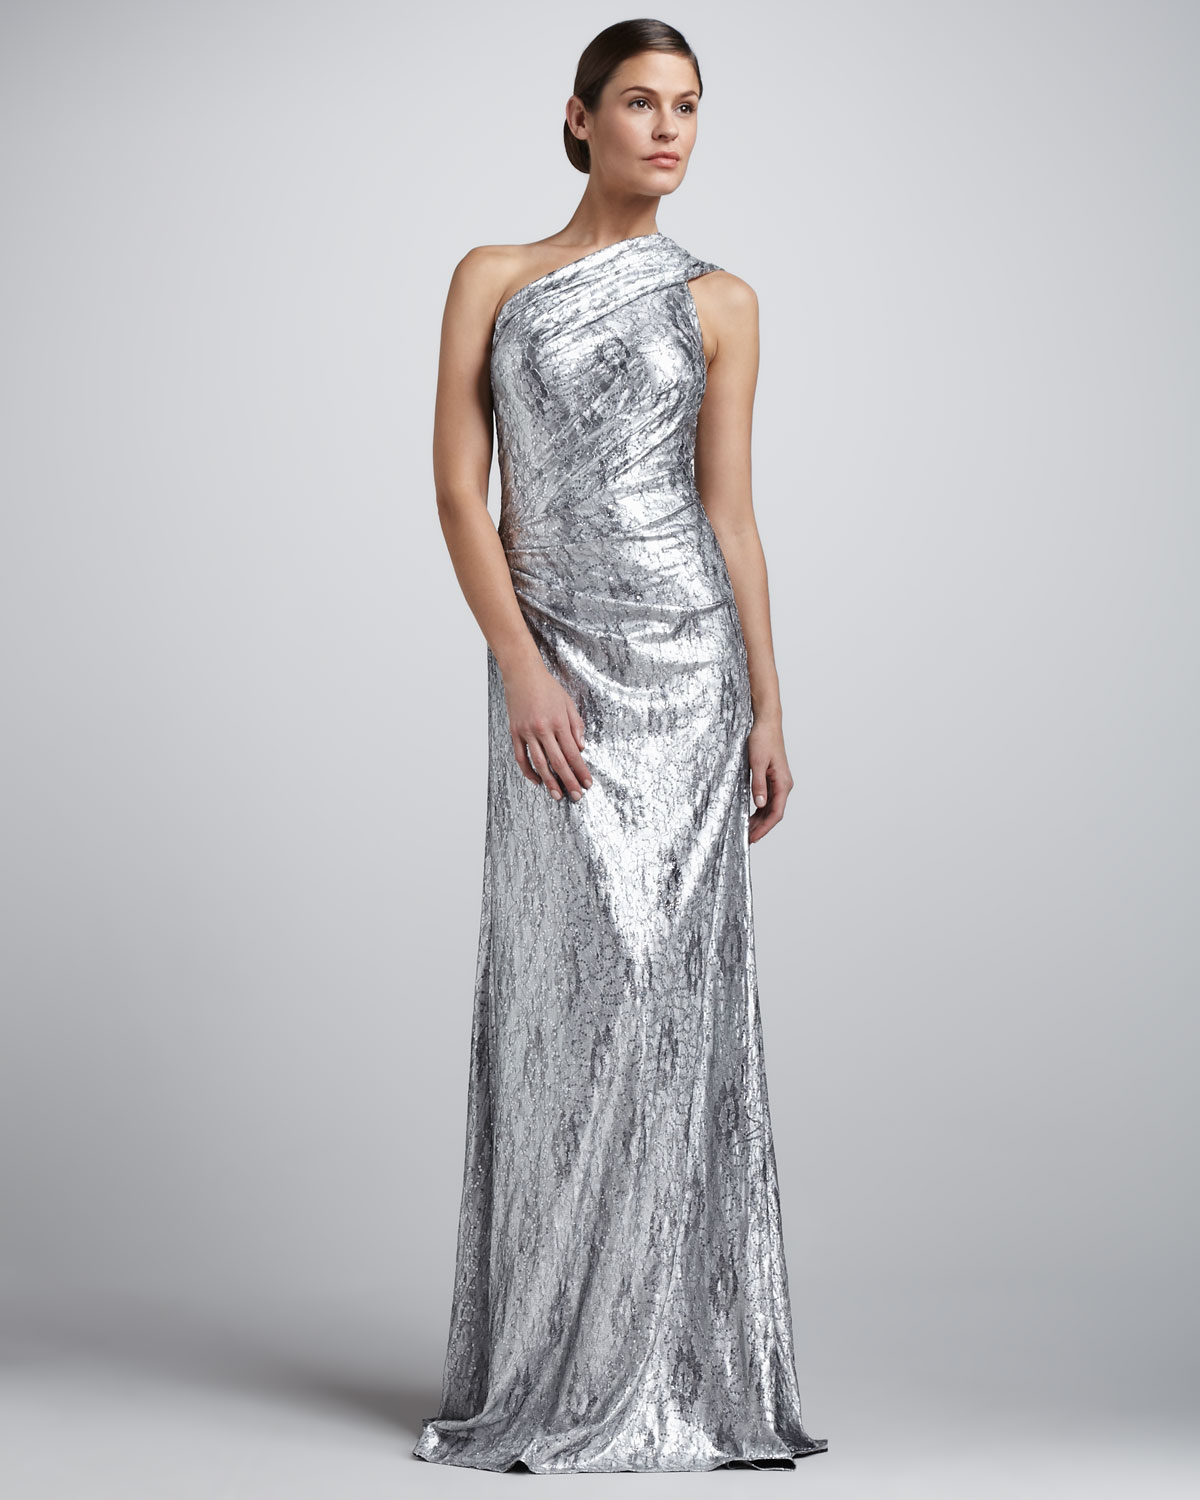 One Shoulder Dress For Wedding Guest Of Metallic Wedding Guest Dresses Silver One Shoulder